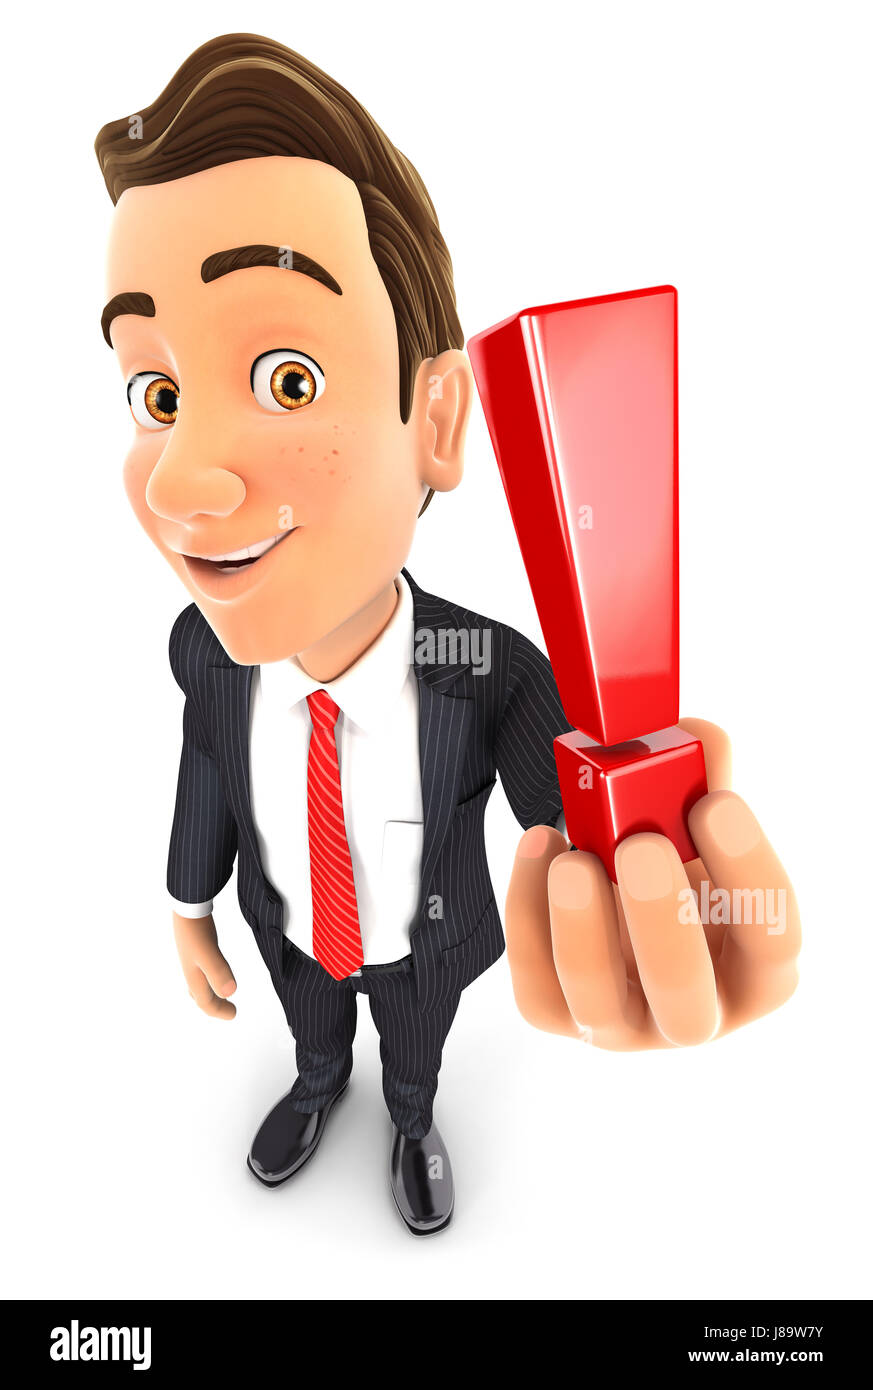 3d businessman holding exclamation mark, illustration with isolated white background Stock Photo